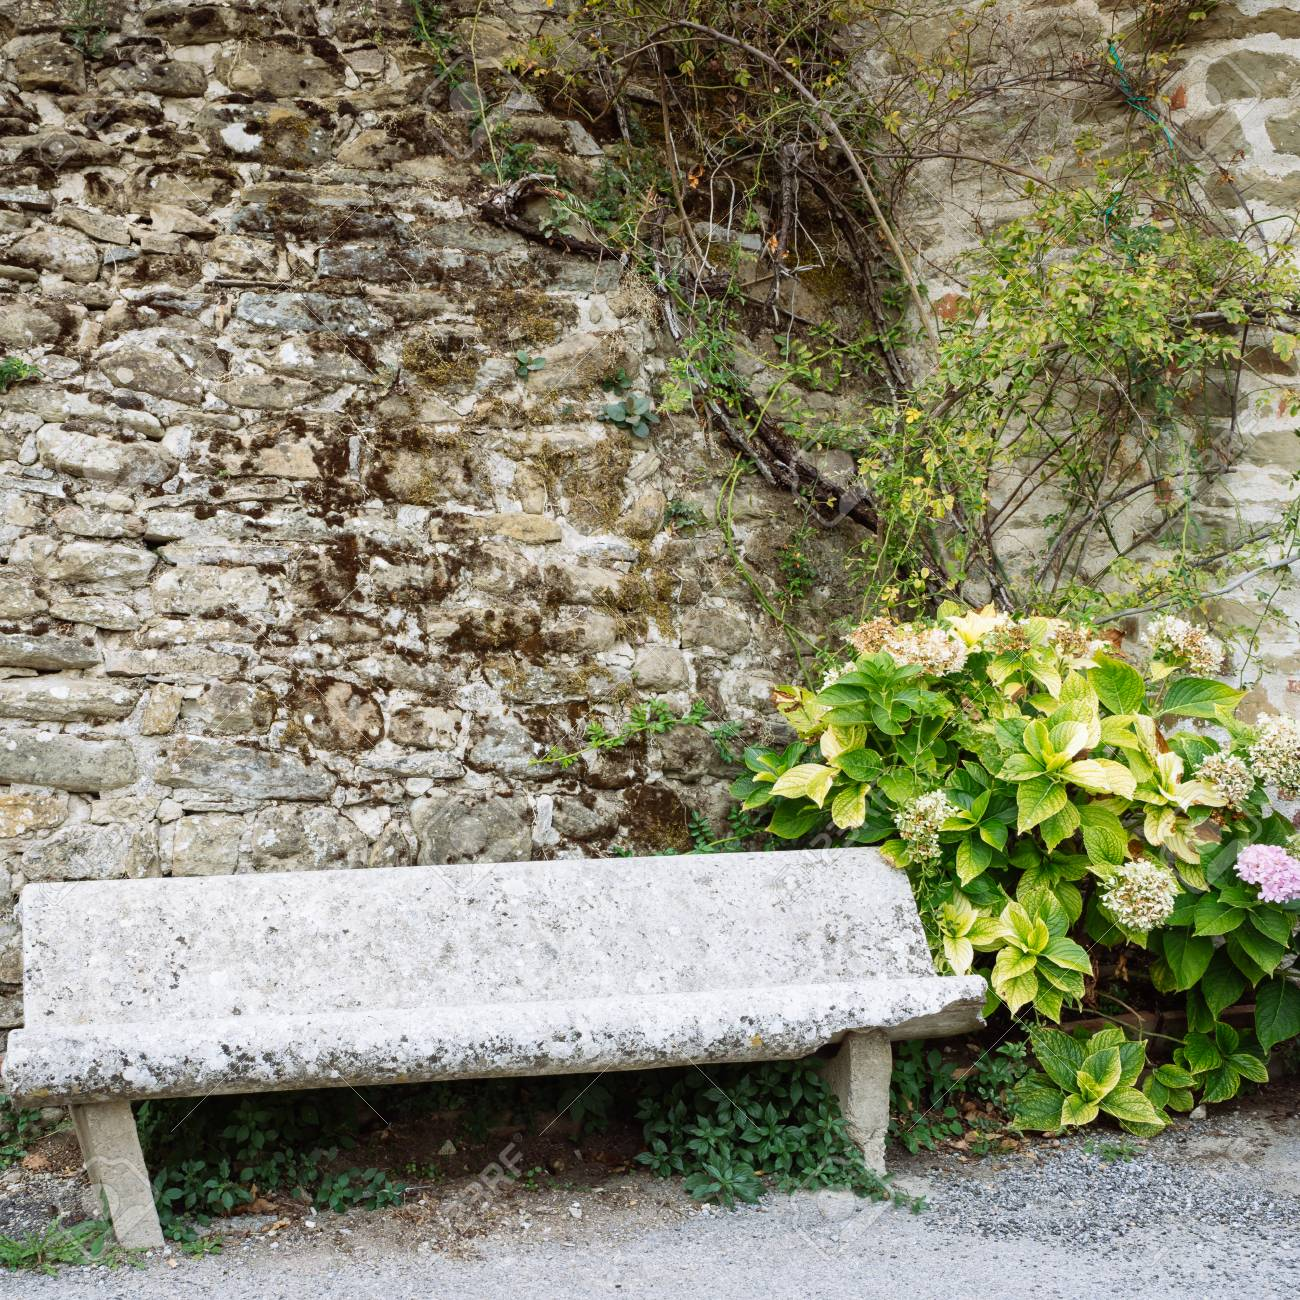 Sensational Ancient Stone Bench In A Small Village Of Medieval Origin Volpaia Machost Co Dining Chair Design Ideas Machostcouk